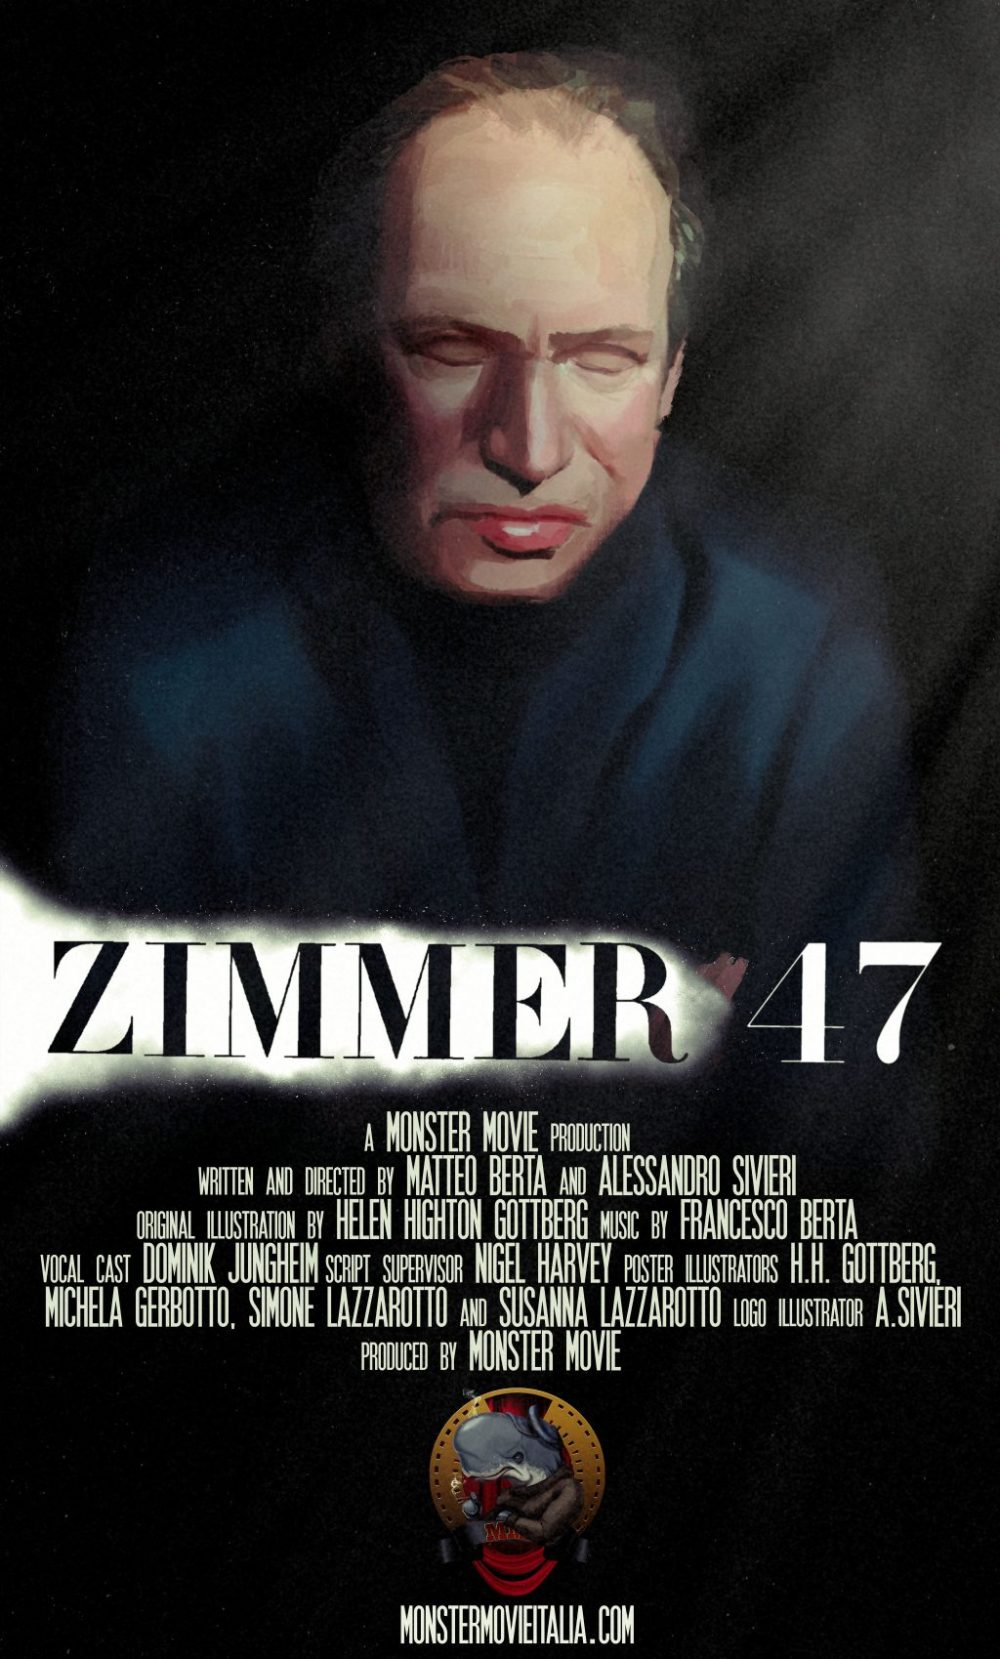 Hans Zimmer fan film official poster